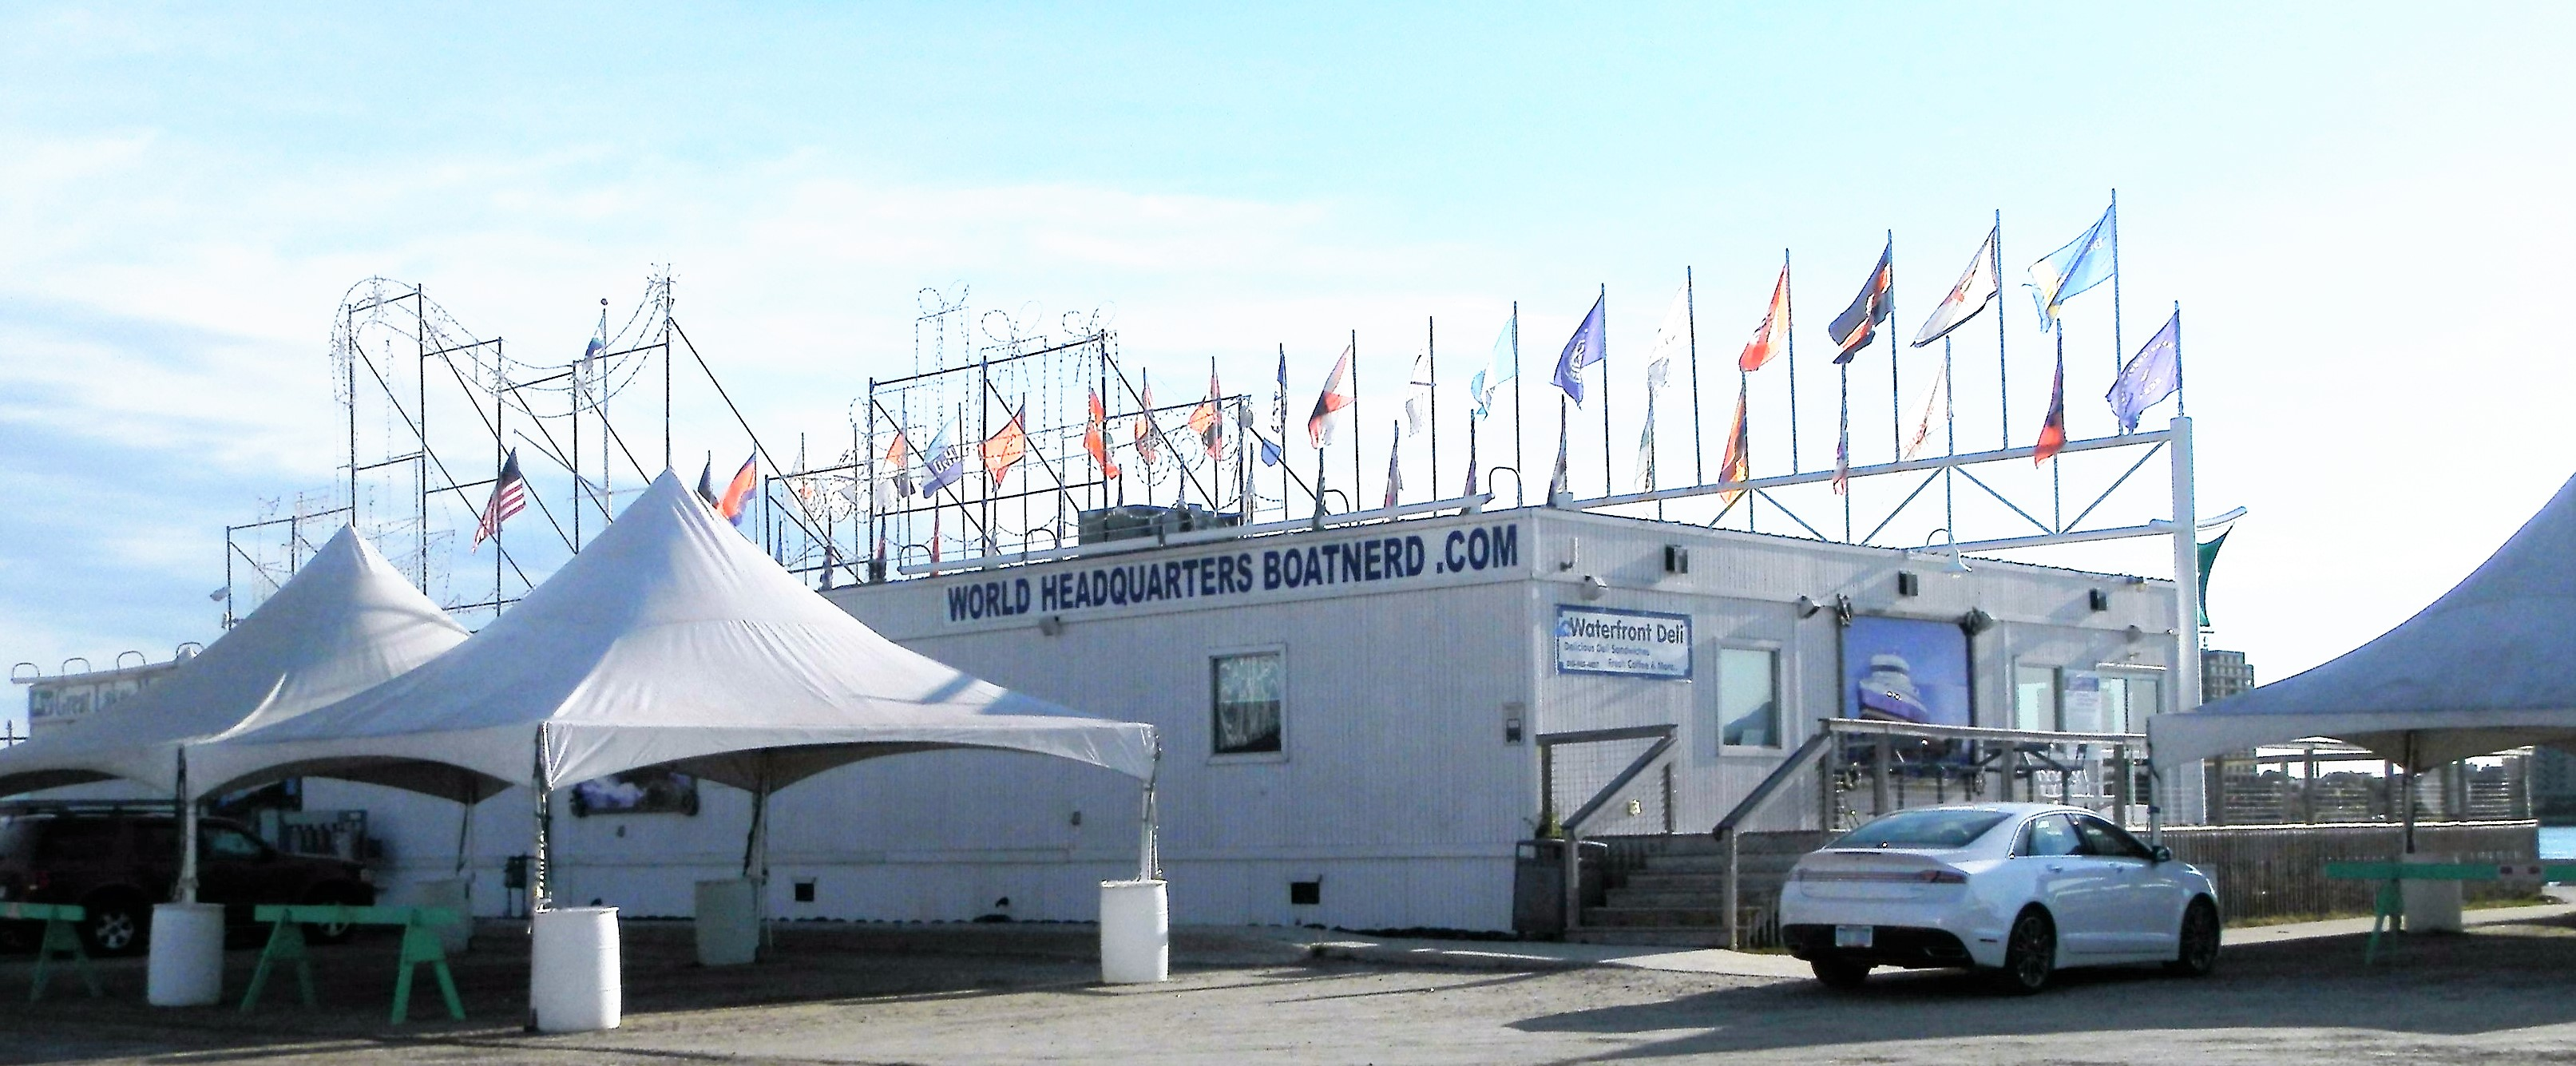 The Maritime Center is world headquarters for the Boat Nerd. <span class=&apos;image-credits&apos;>Jeri Packer</span>